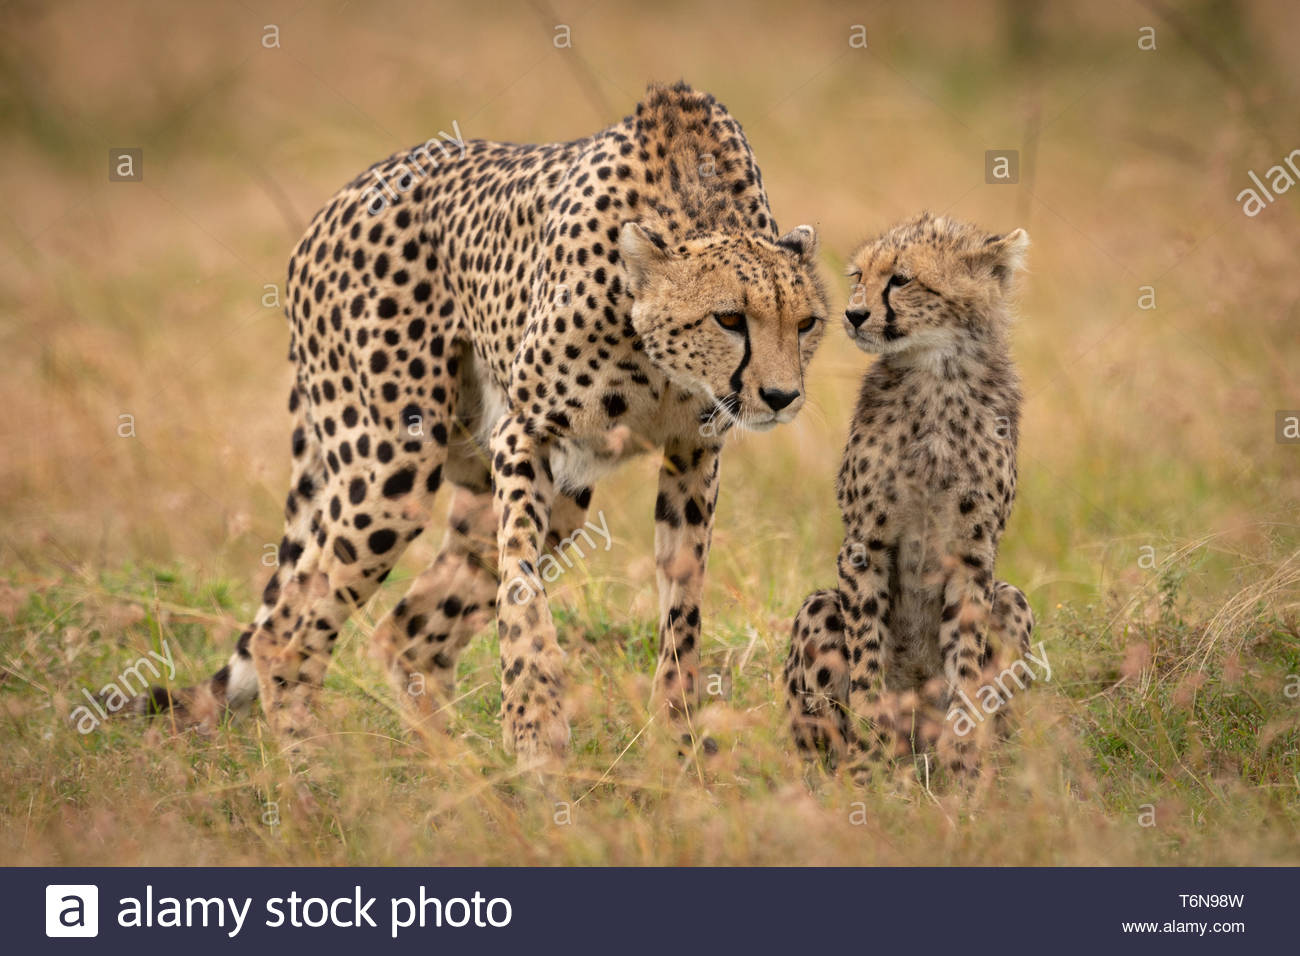 Cheetah appears to listen to whispering cub - Stock Image